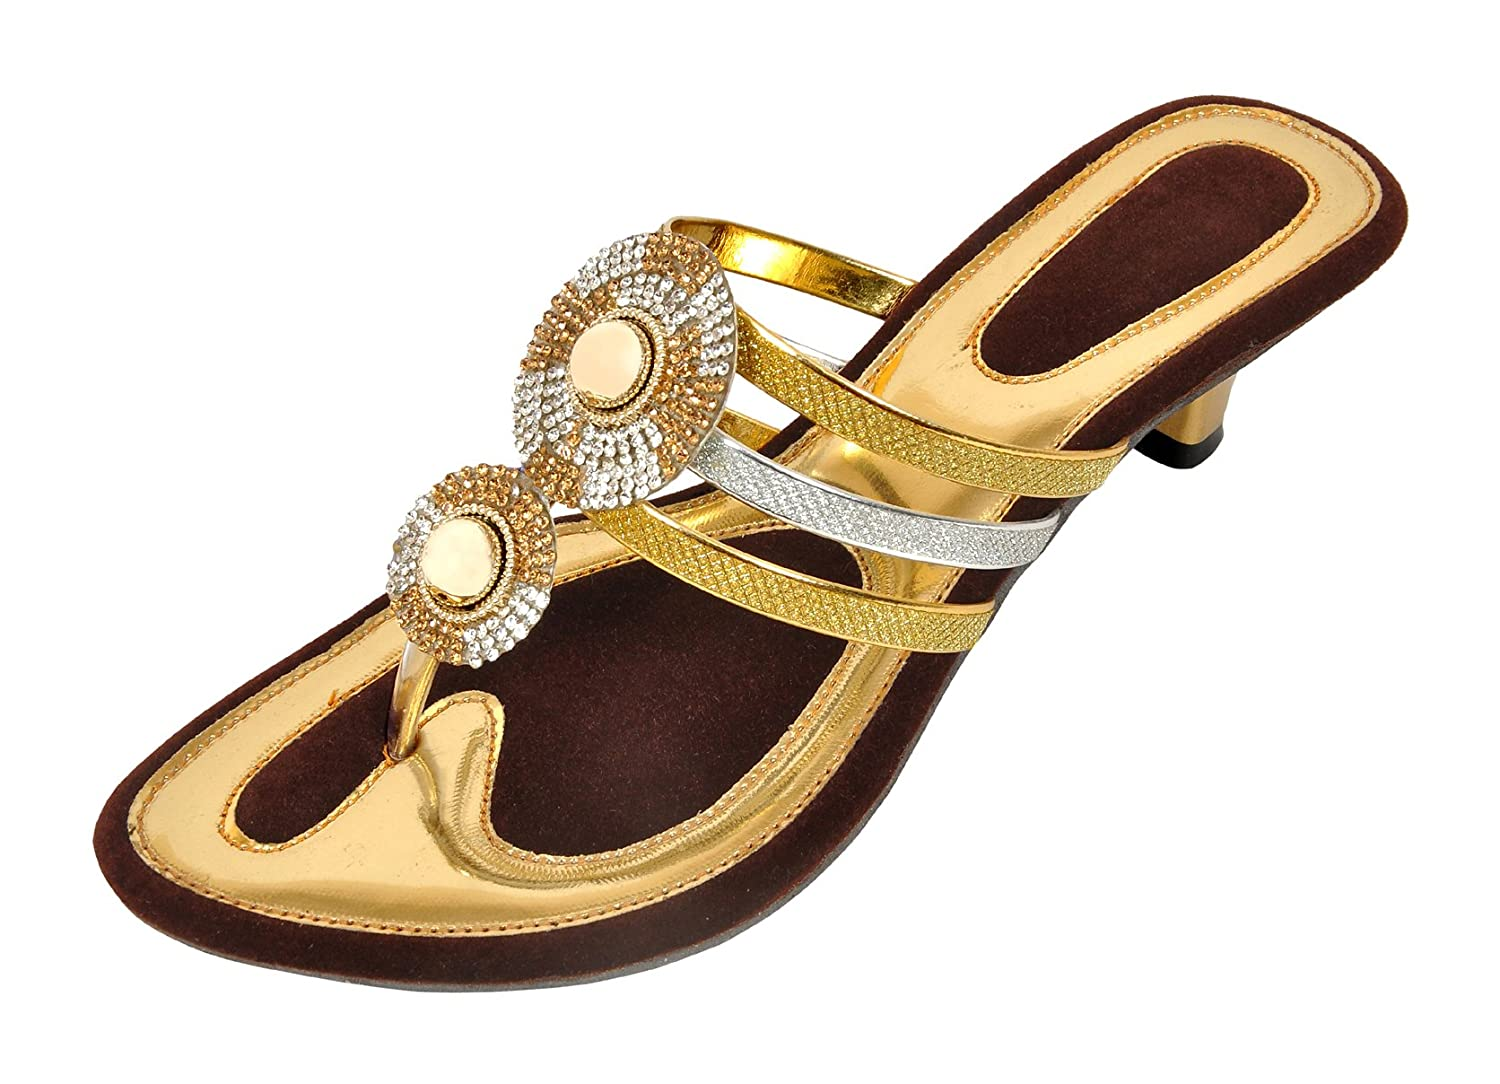 a082820ba2c Altek Stylish Fashion Sandals for Women   Girl  Buy Online at Low Prices in  India - Amazon.in